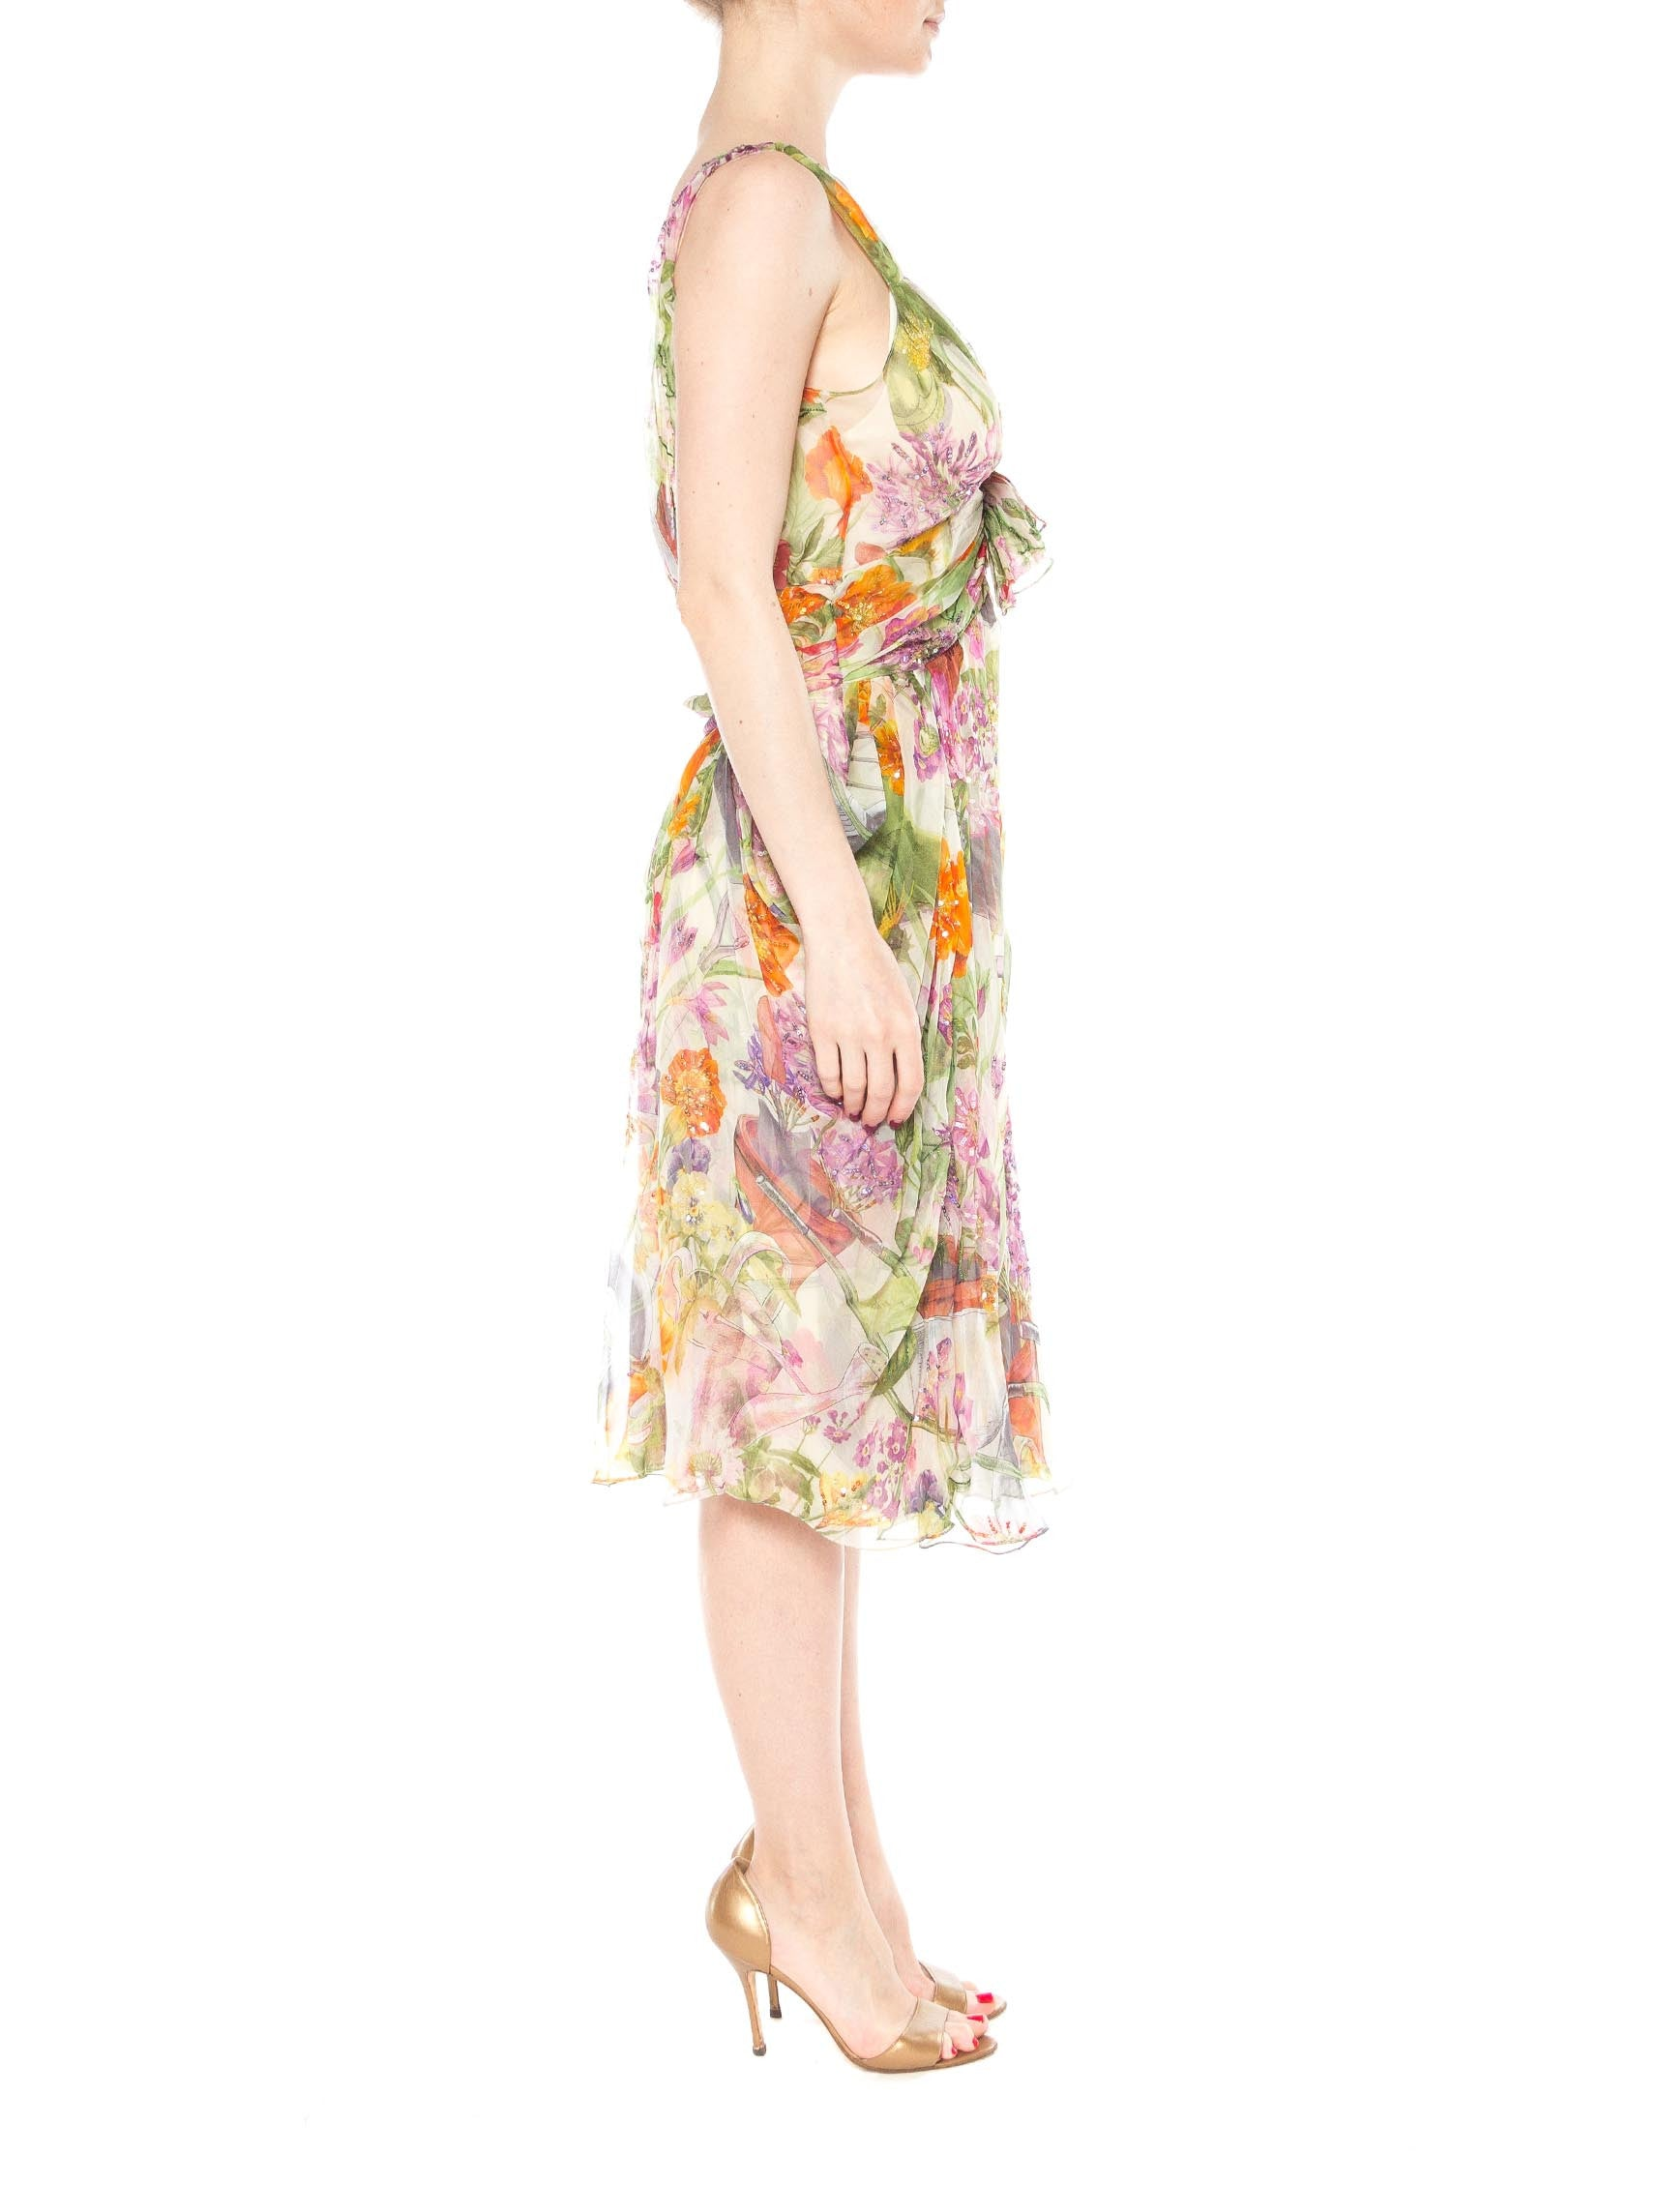 1990S JOHN GALLIANO CHRISTIAN DIOR Pastel Floral Silk Chiffon Backless Beaded Garden Cocktail Dress